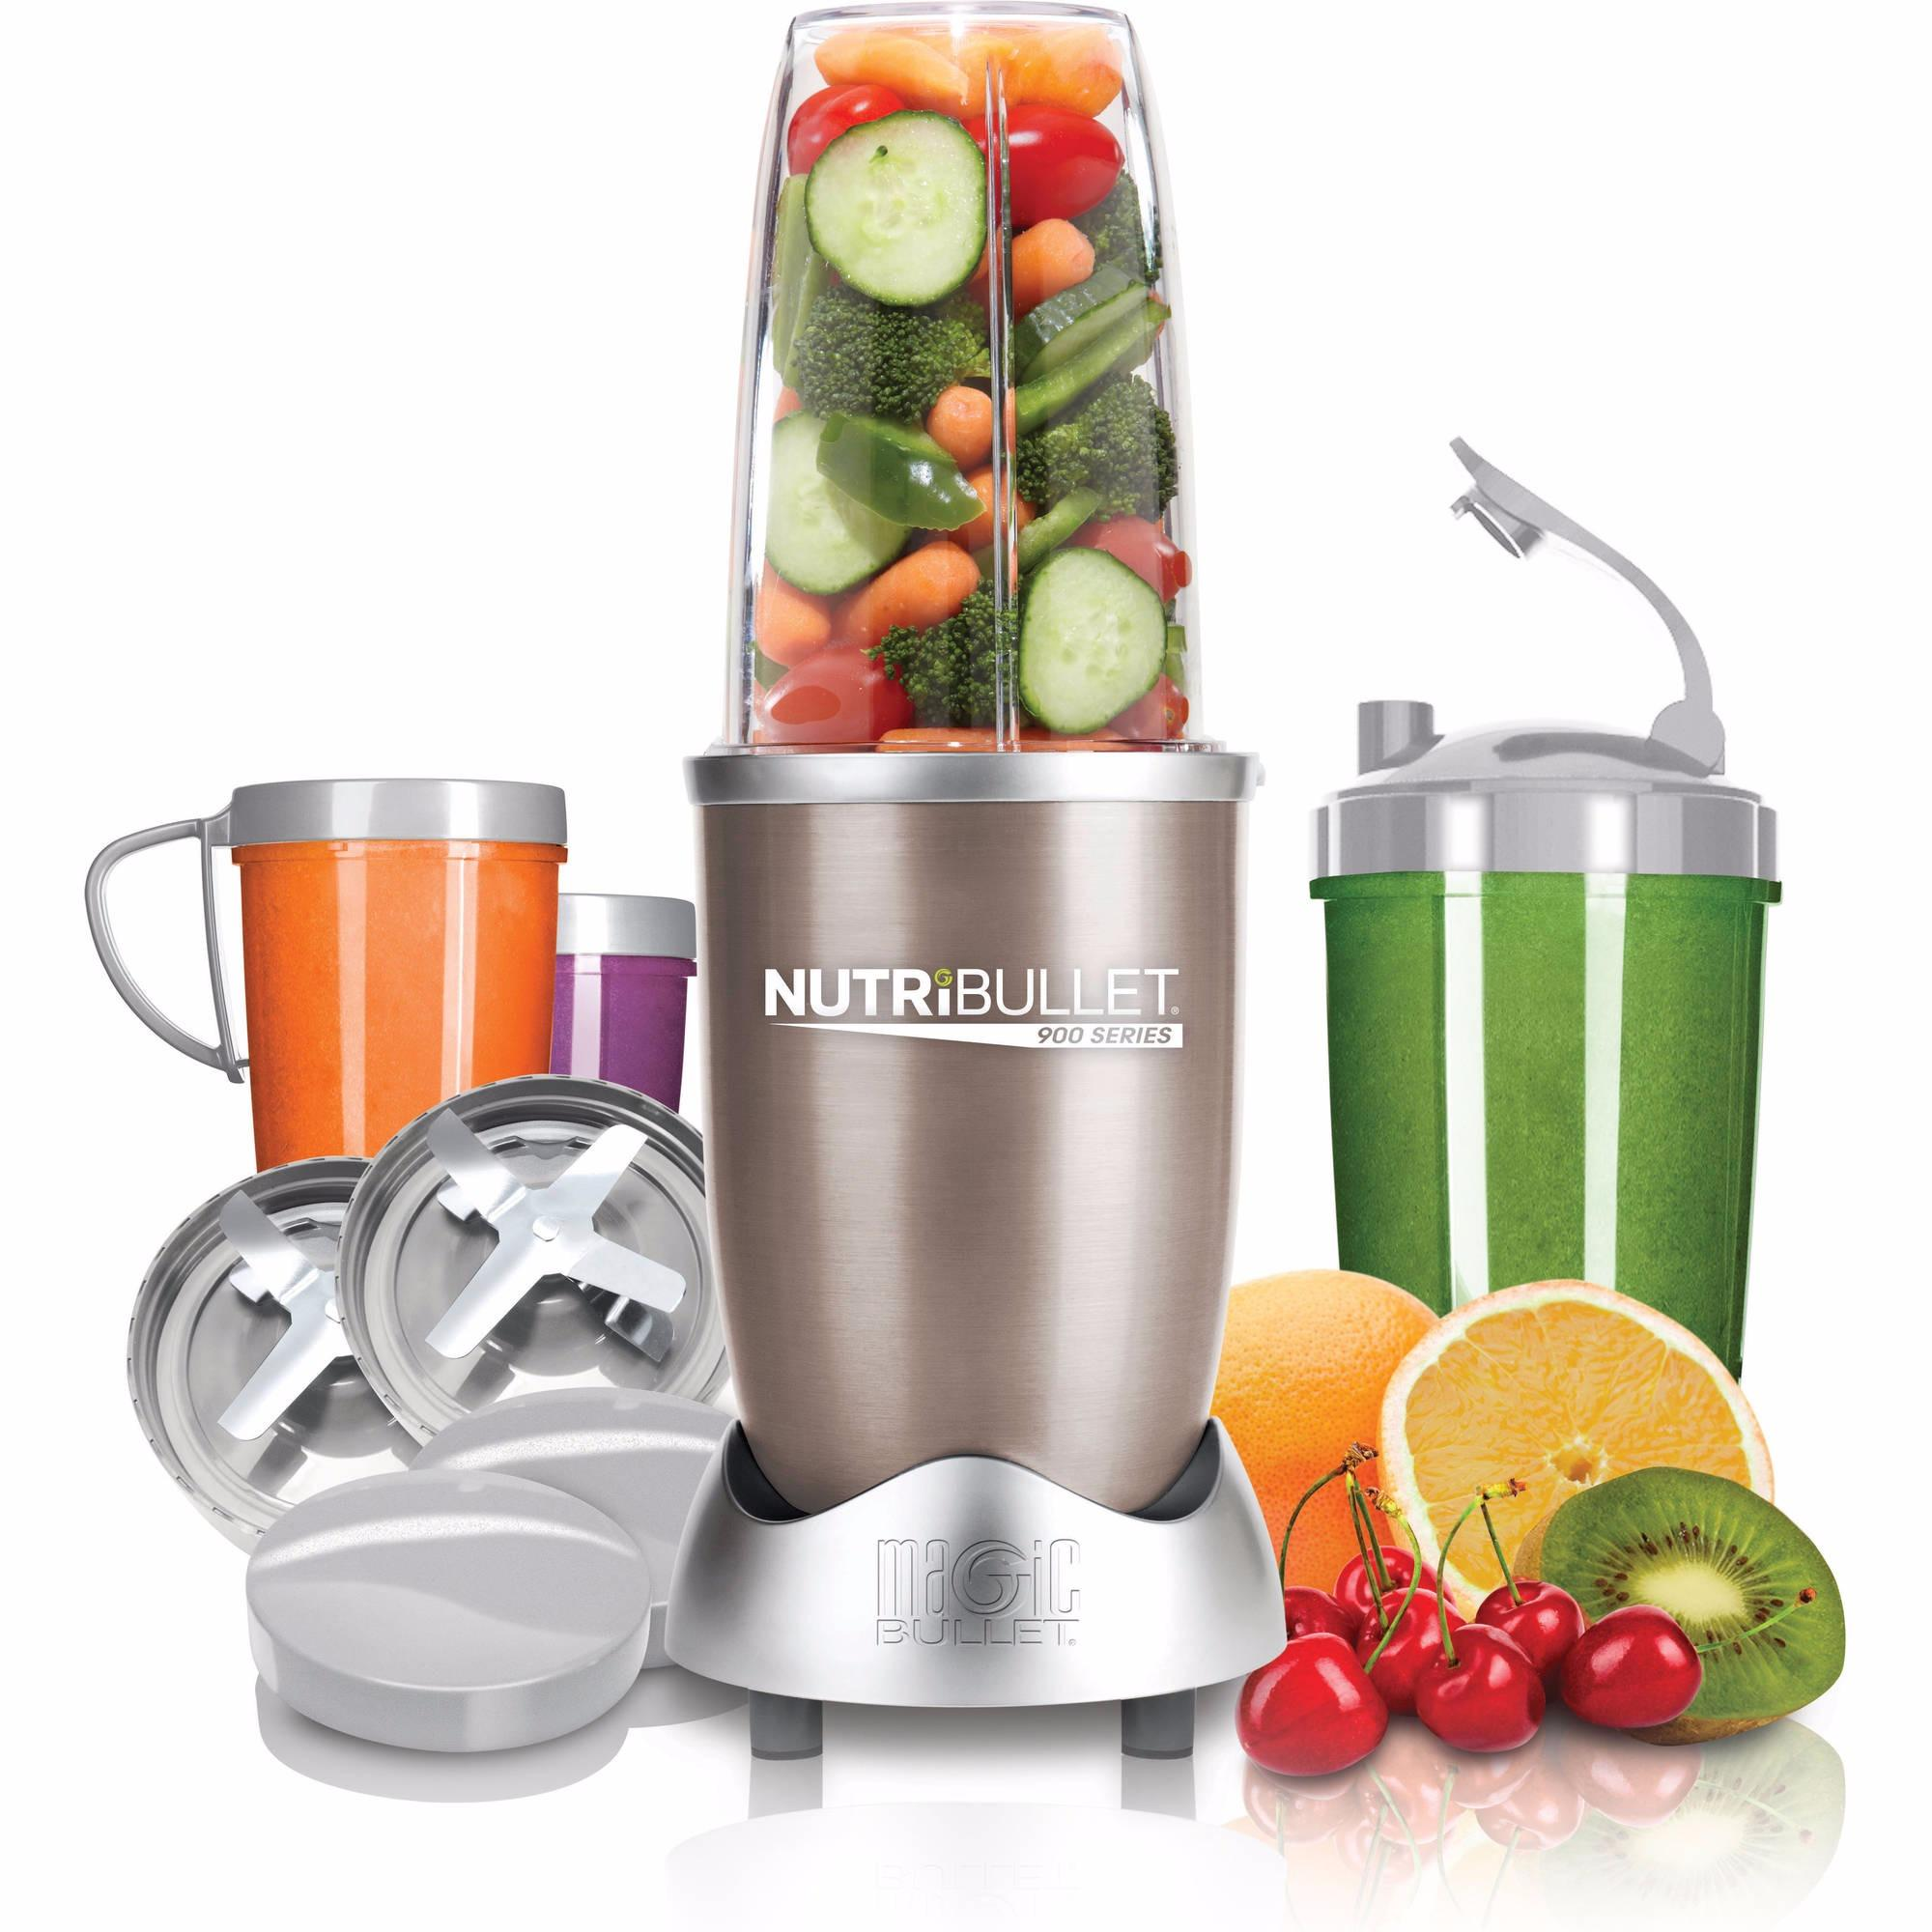 Price Nutribullet Pro Nb900 Mixer Juicer Bpa Free On Singapore